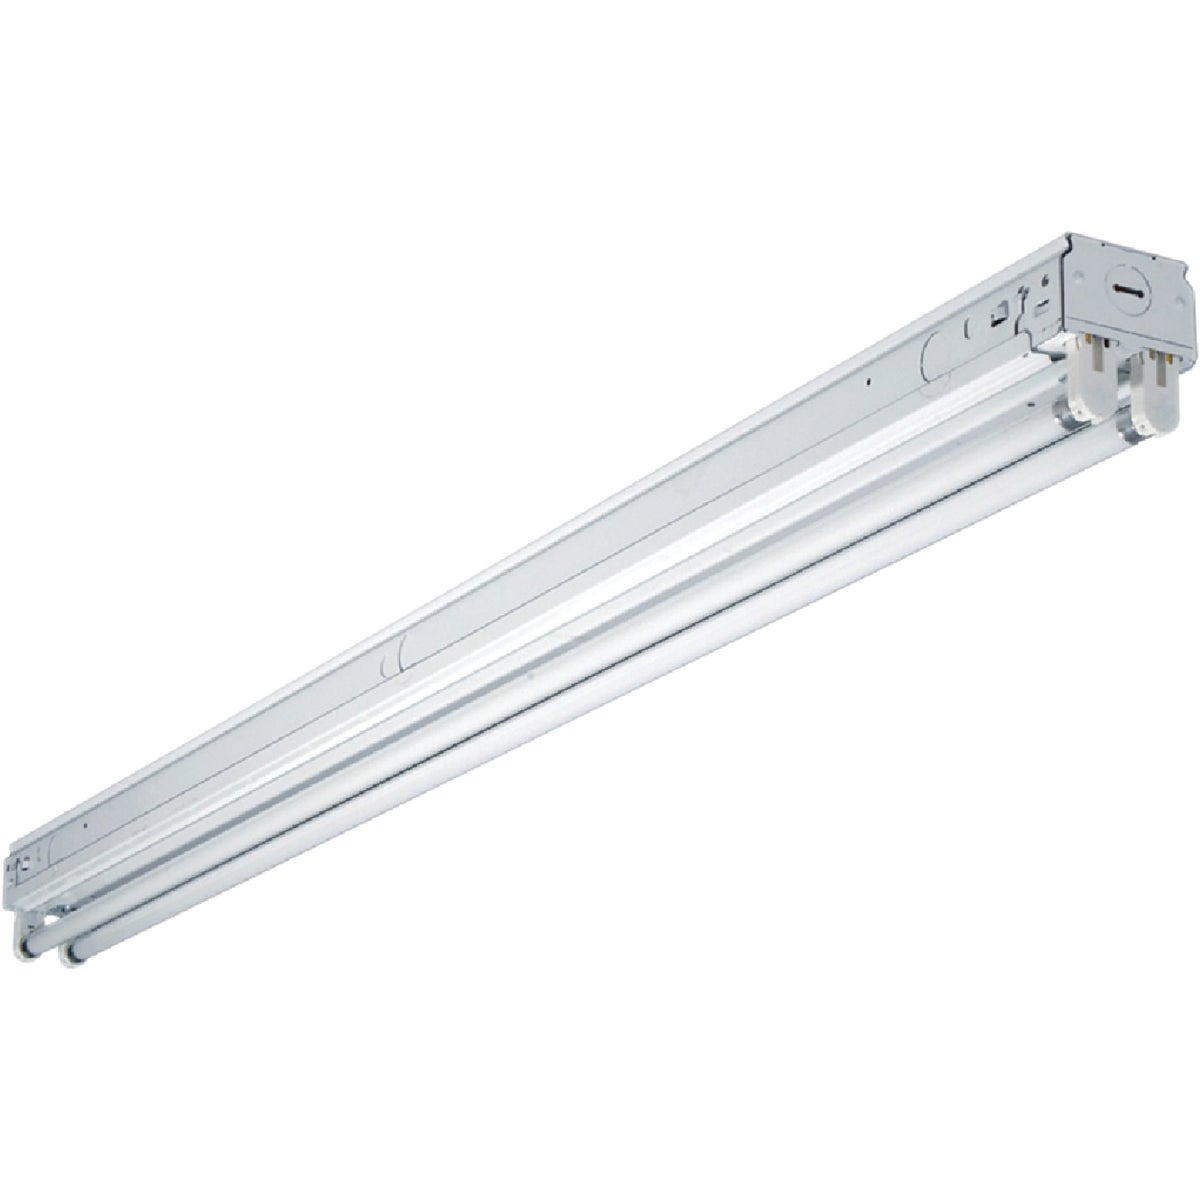 4' T8 2BULB STRIP LIGHT - C232120GESB by Lithonia Lighting